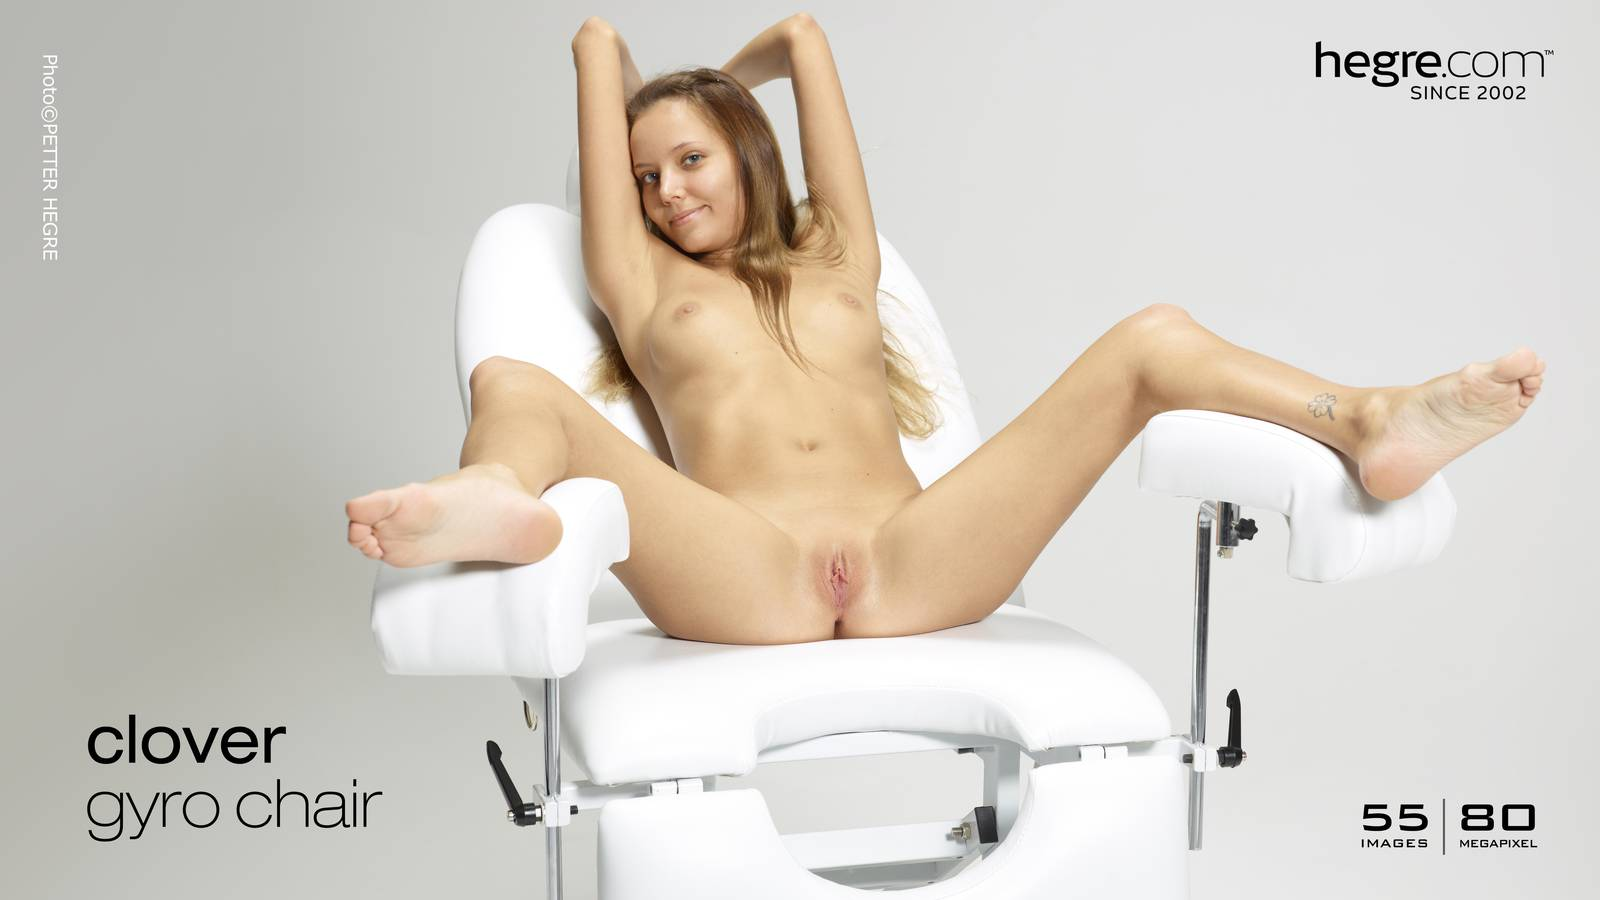 Gyno chair sex